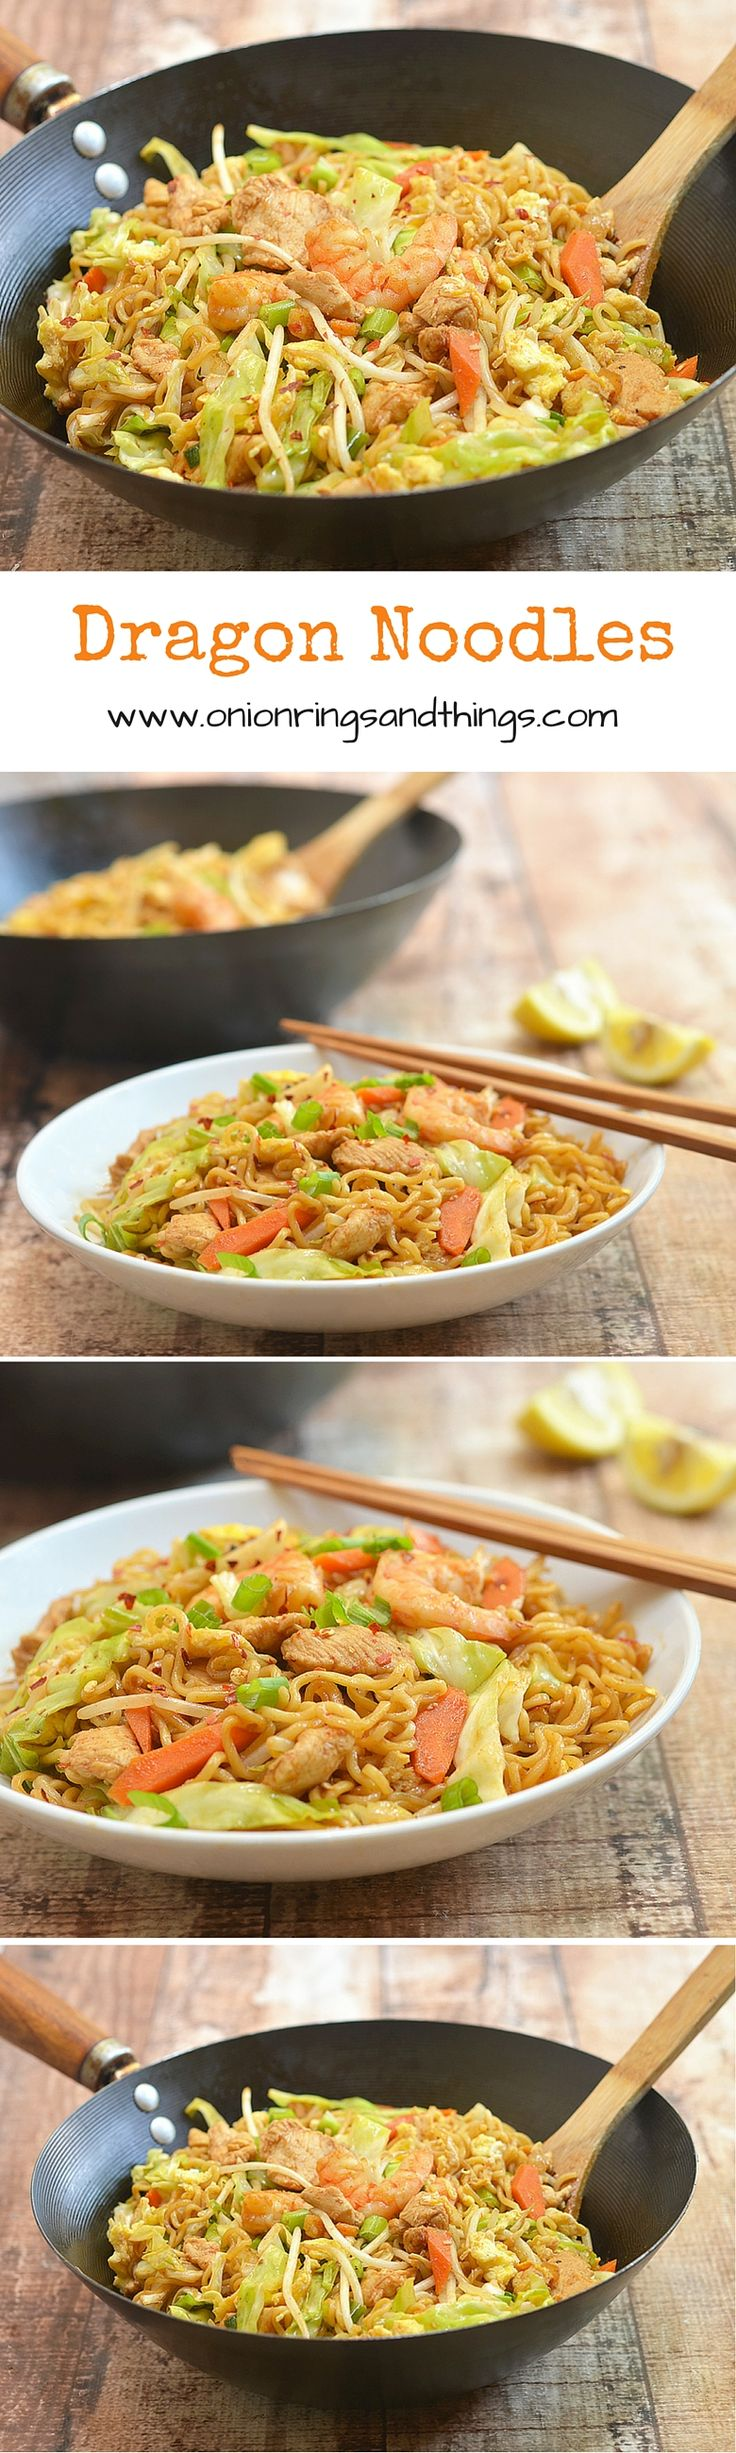 Chock-full of chicken, shrimp and veggies, these dragon noodles are a delicious way to turn your ramen noodle packages at home into a meal worthy of guests. It comes with big, bold flavors everyone is sure to love.